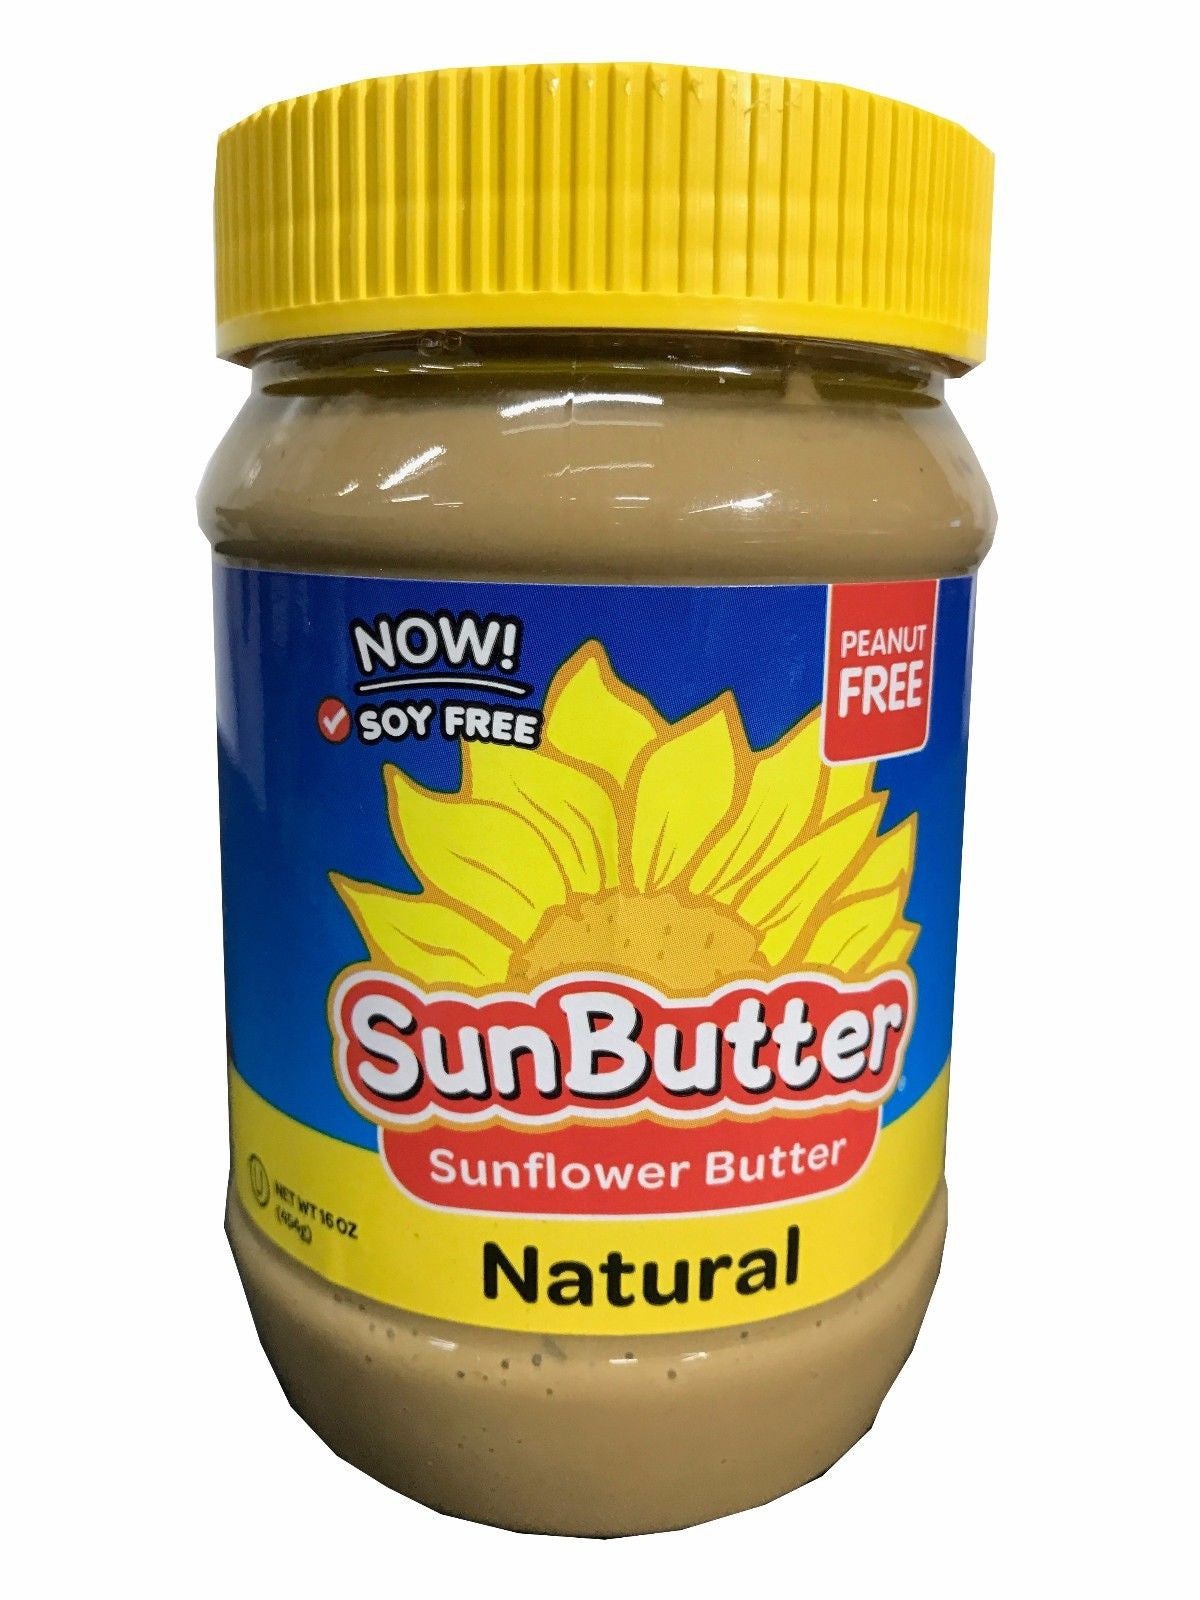 Sun Butter Natural Peanut & Diary Free Sunflower Butter 16 Oz